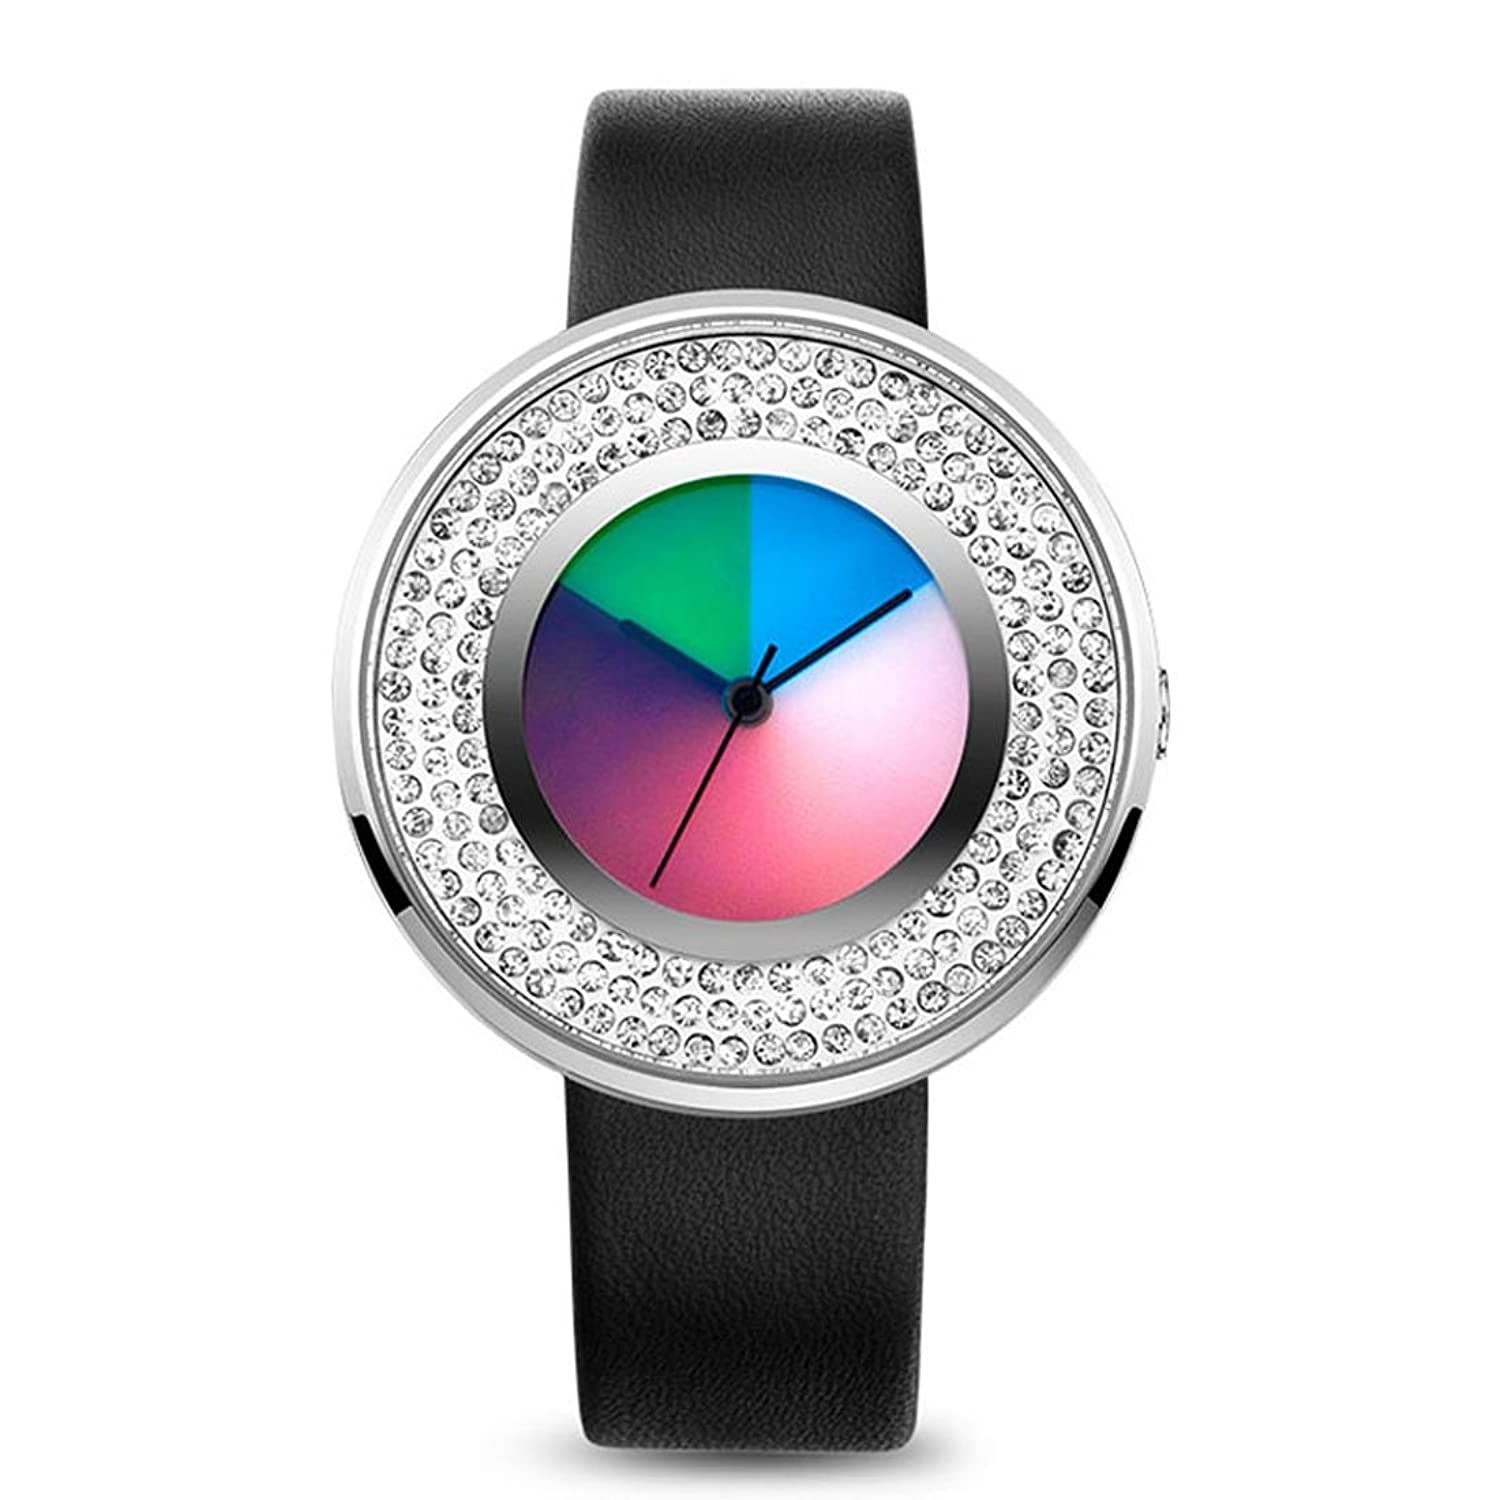 time2u Damen Fashion Concept minimalistisch Colorful Zifferblatt Business Frauen Quarzuhr Armbanduhr mit diamantenl